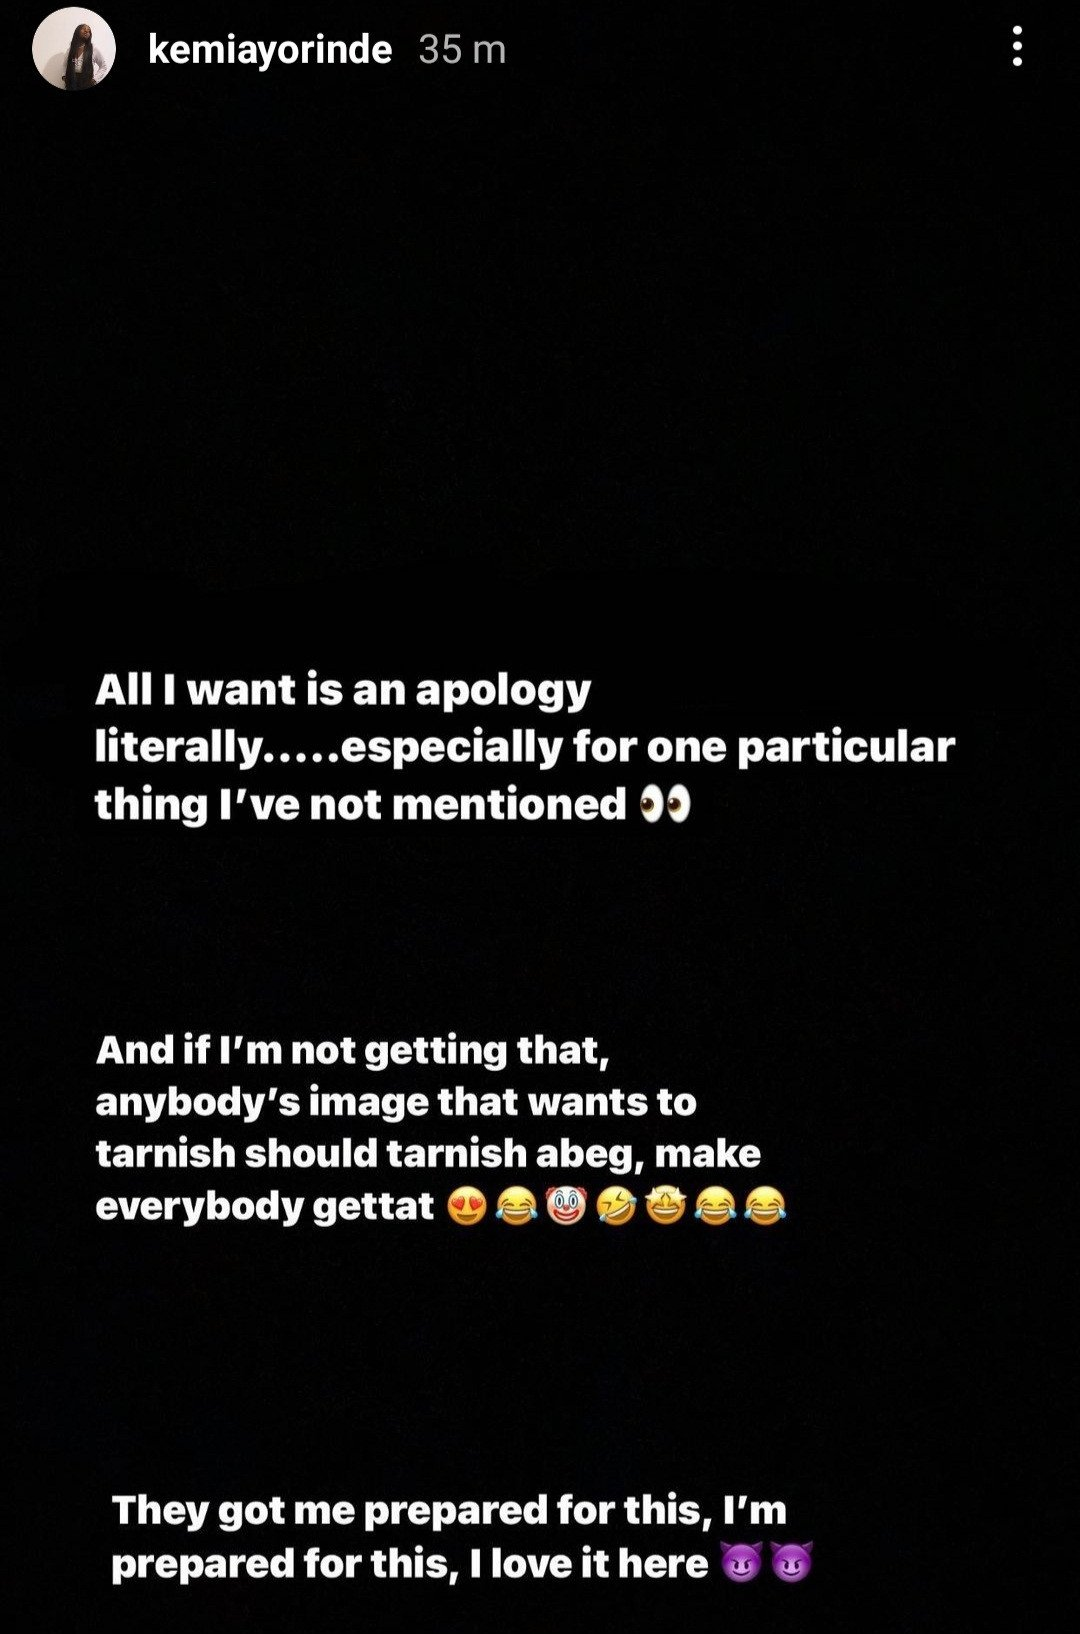 60a4ce5ec1b737932771565644379288 - Lyta's Baby mama continues to drag him as she goes on a long rant about him not contributing financially